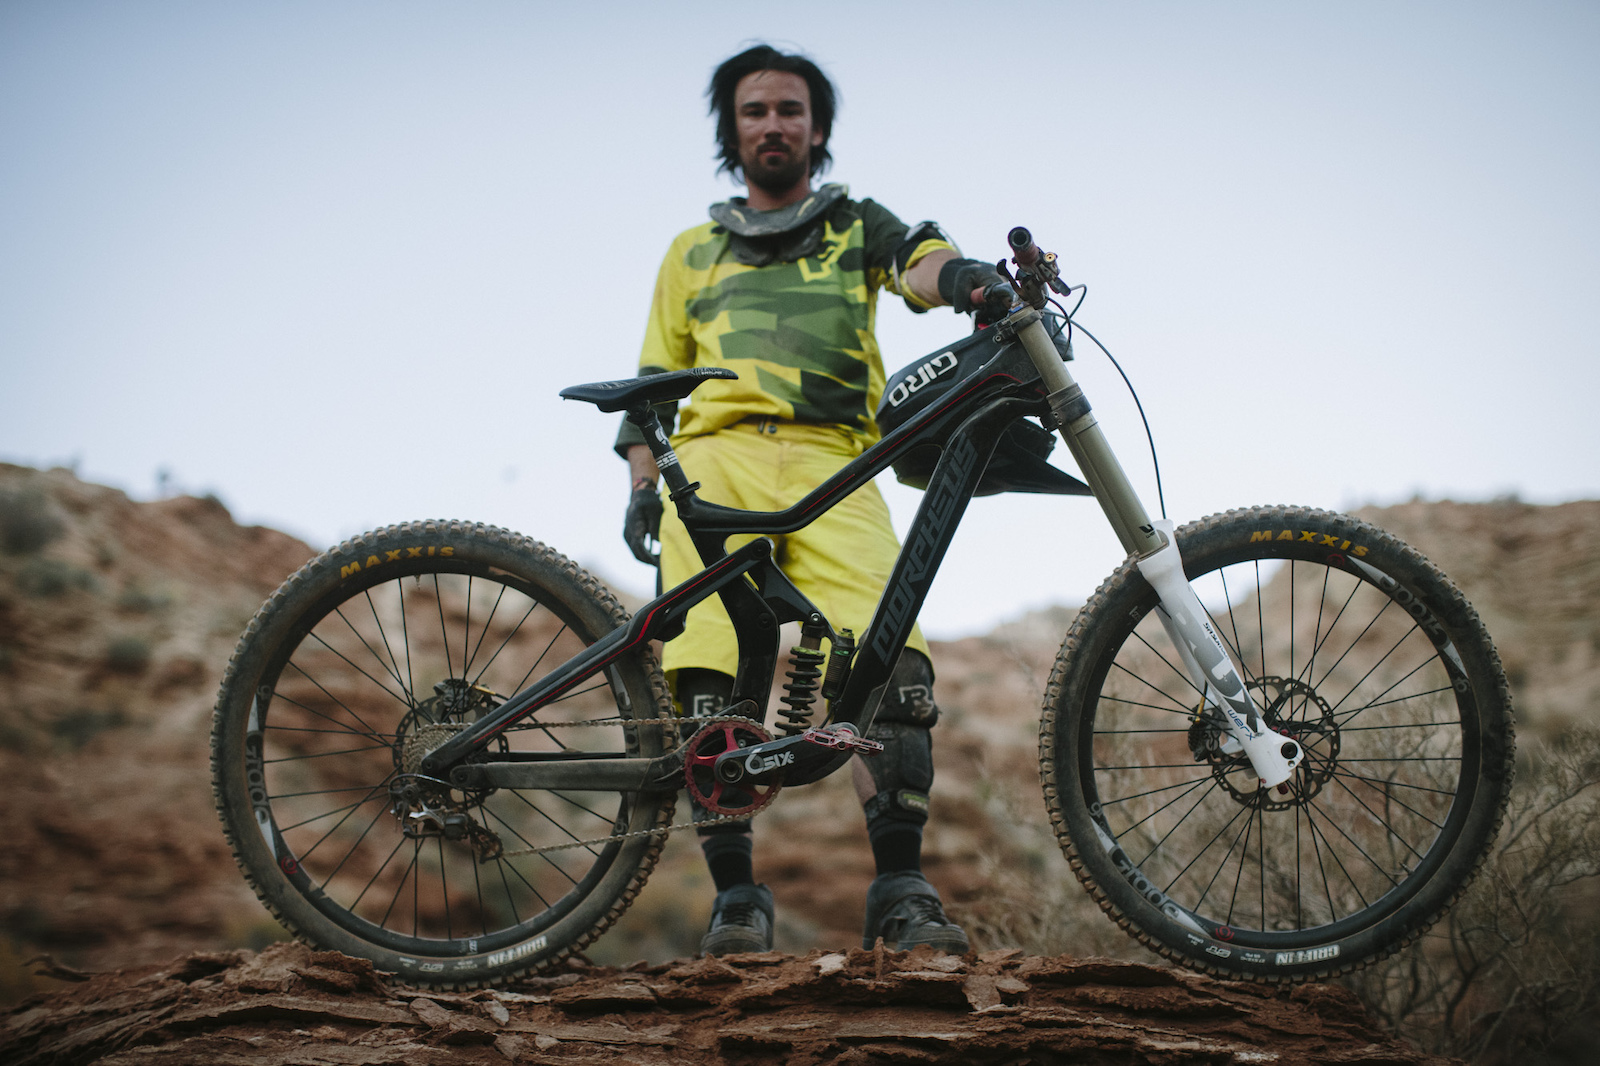 Mitch Chubey at RedBull Rampage 2015 Virgin Utah USA